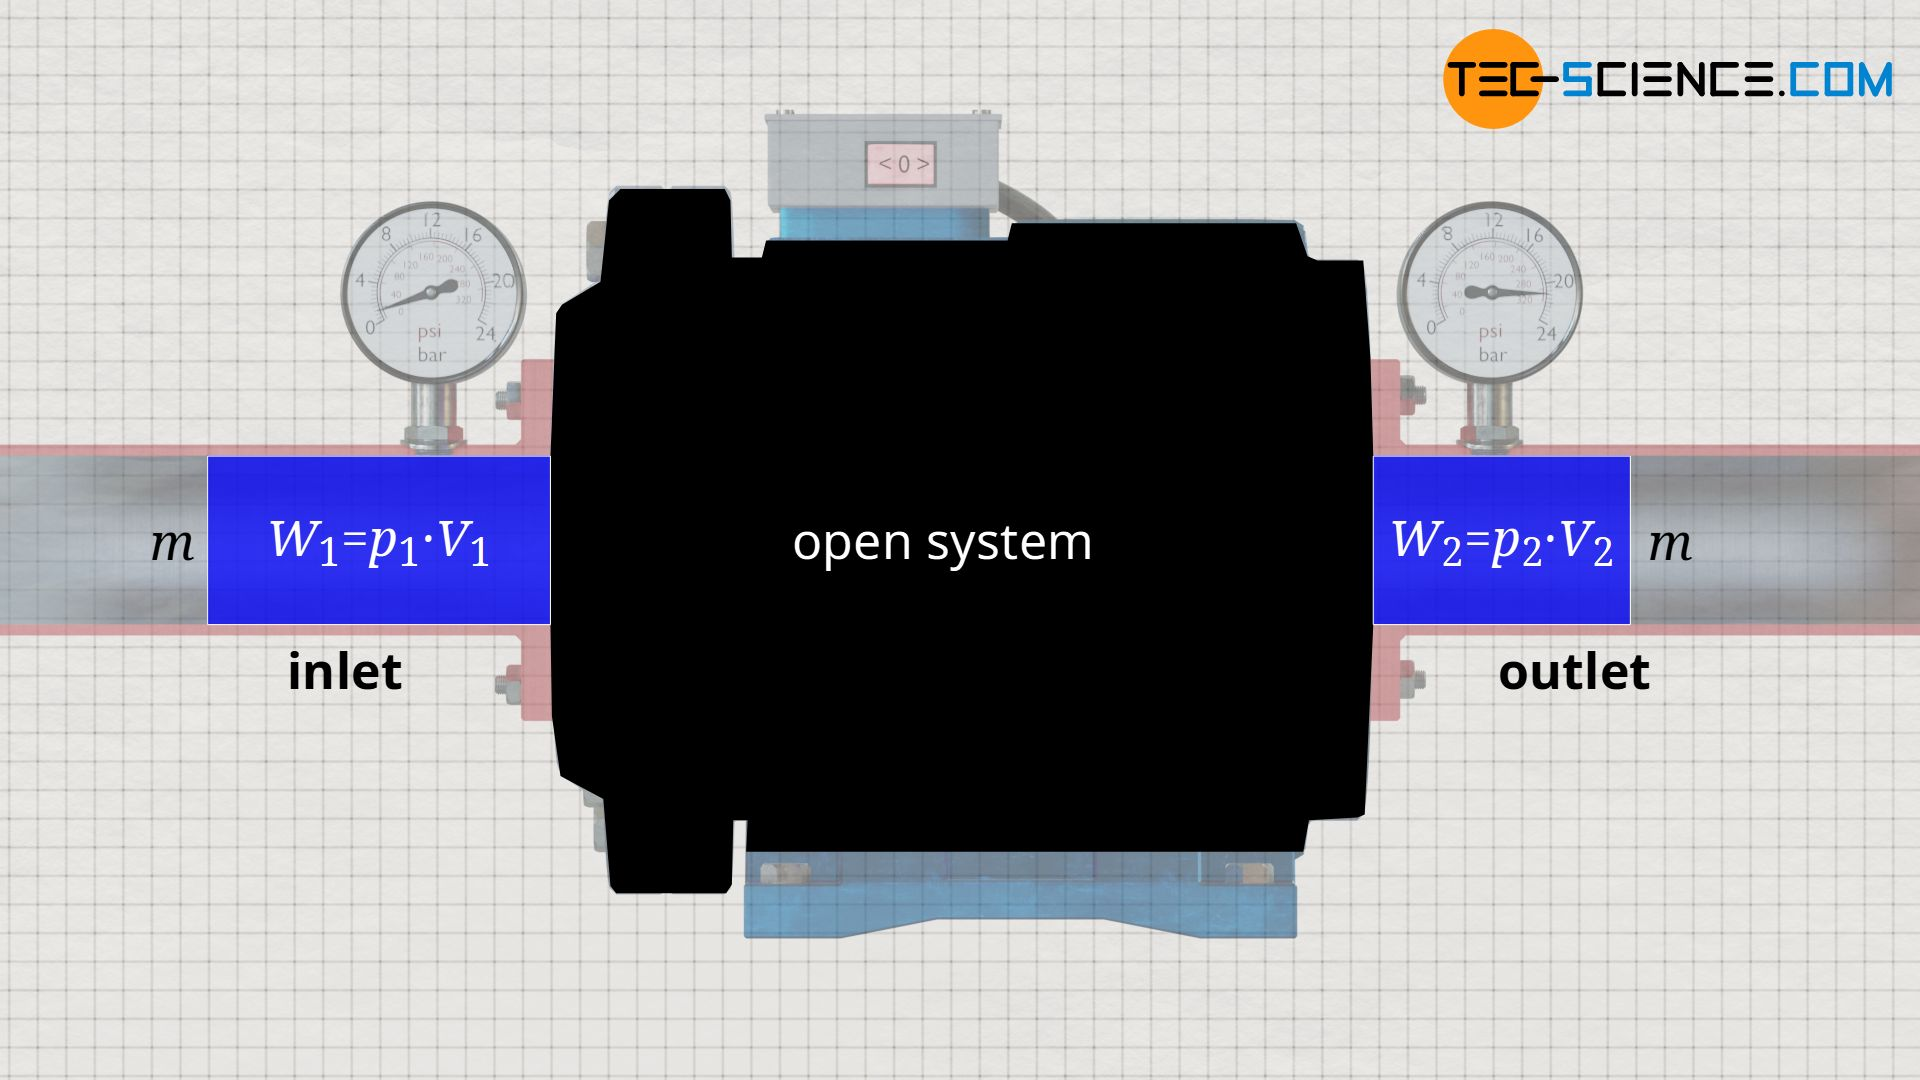 Flow work when the open system is viewed as a black box